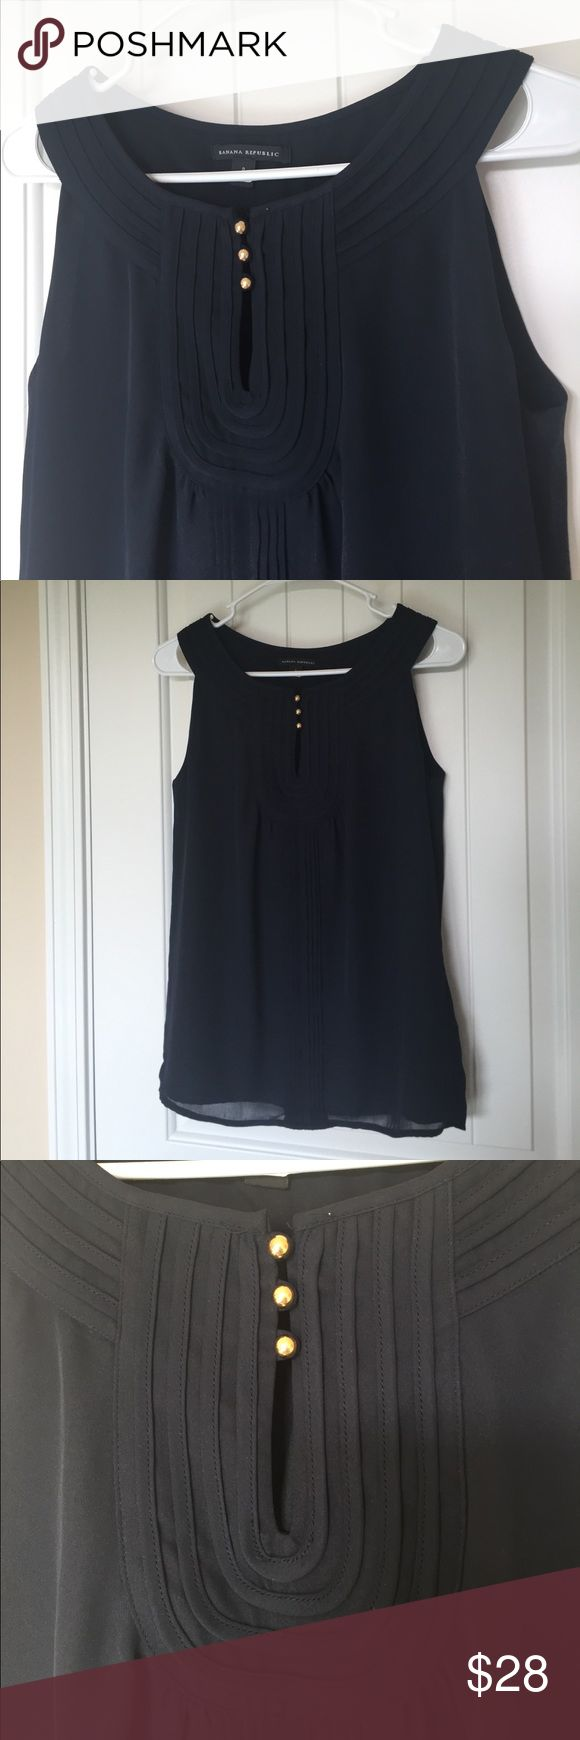 Banana Republic Navy Career tank Like new career top. Navy with gold buttons. Sheer polyester with built in lining. Banana Republic Tops